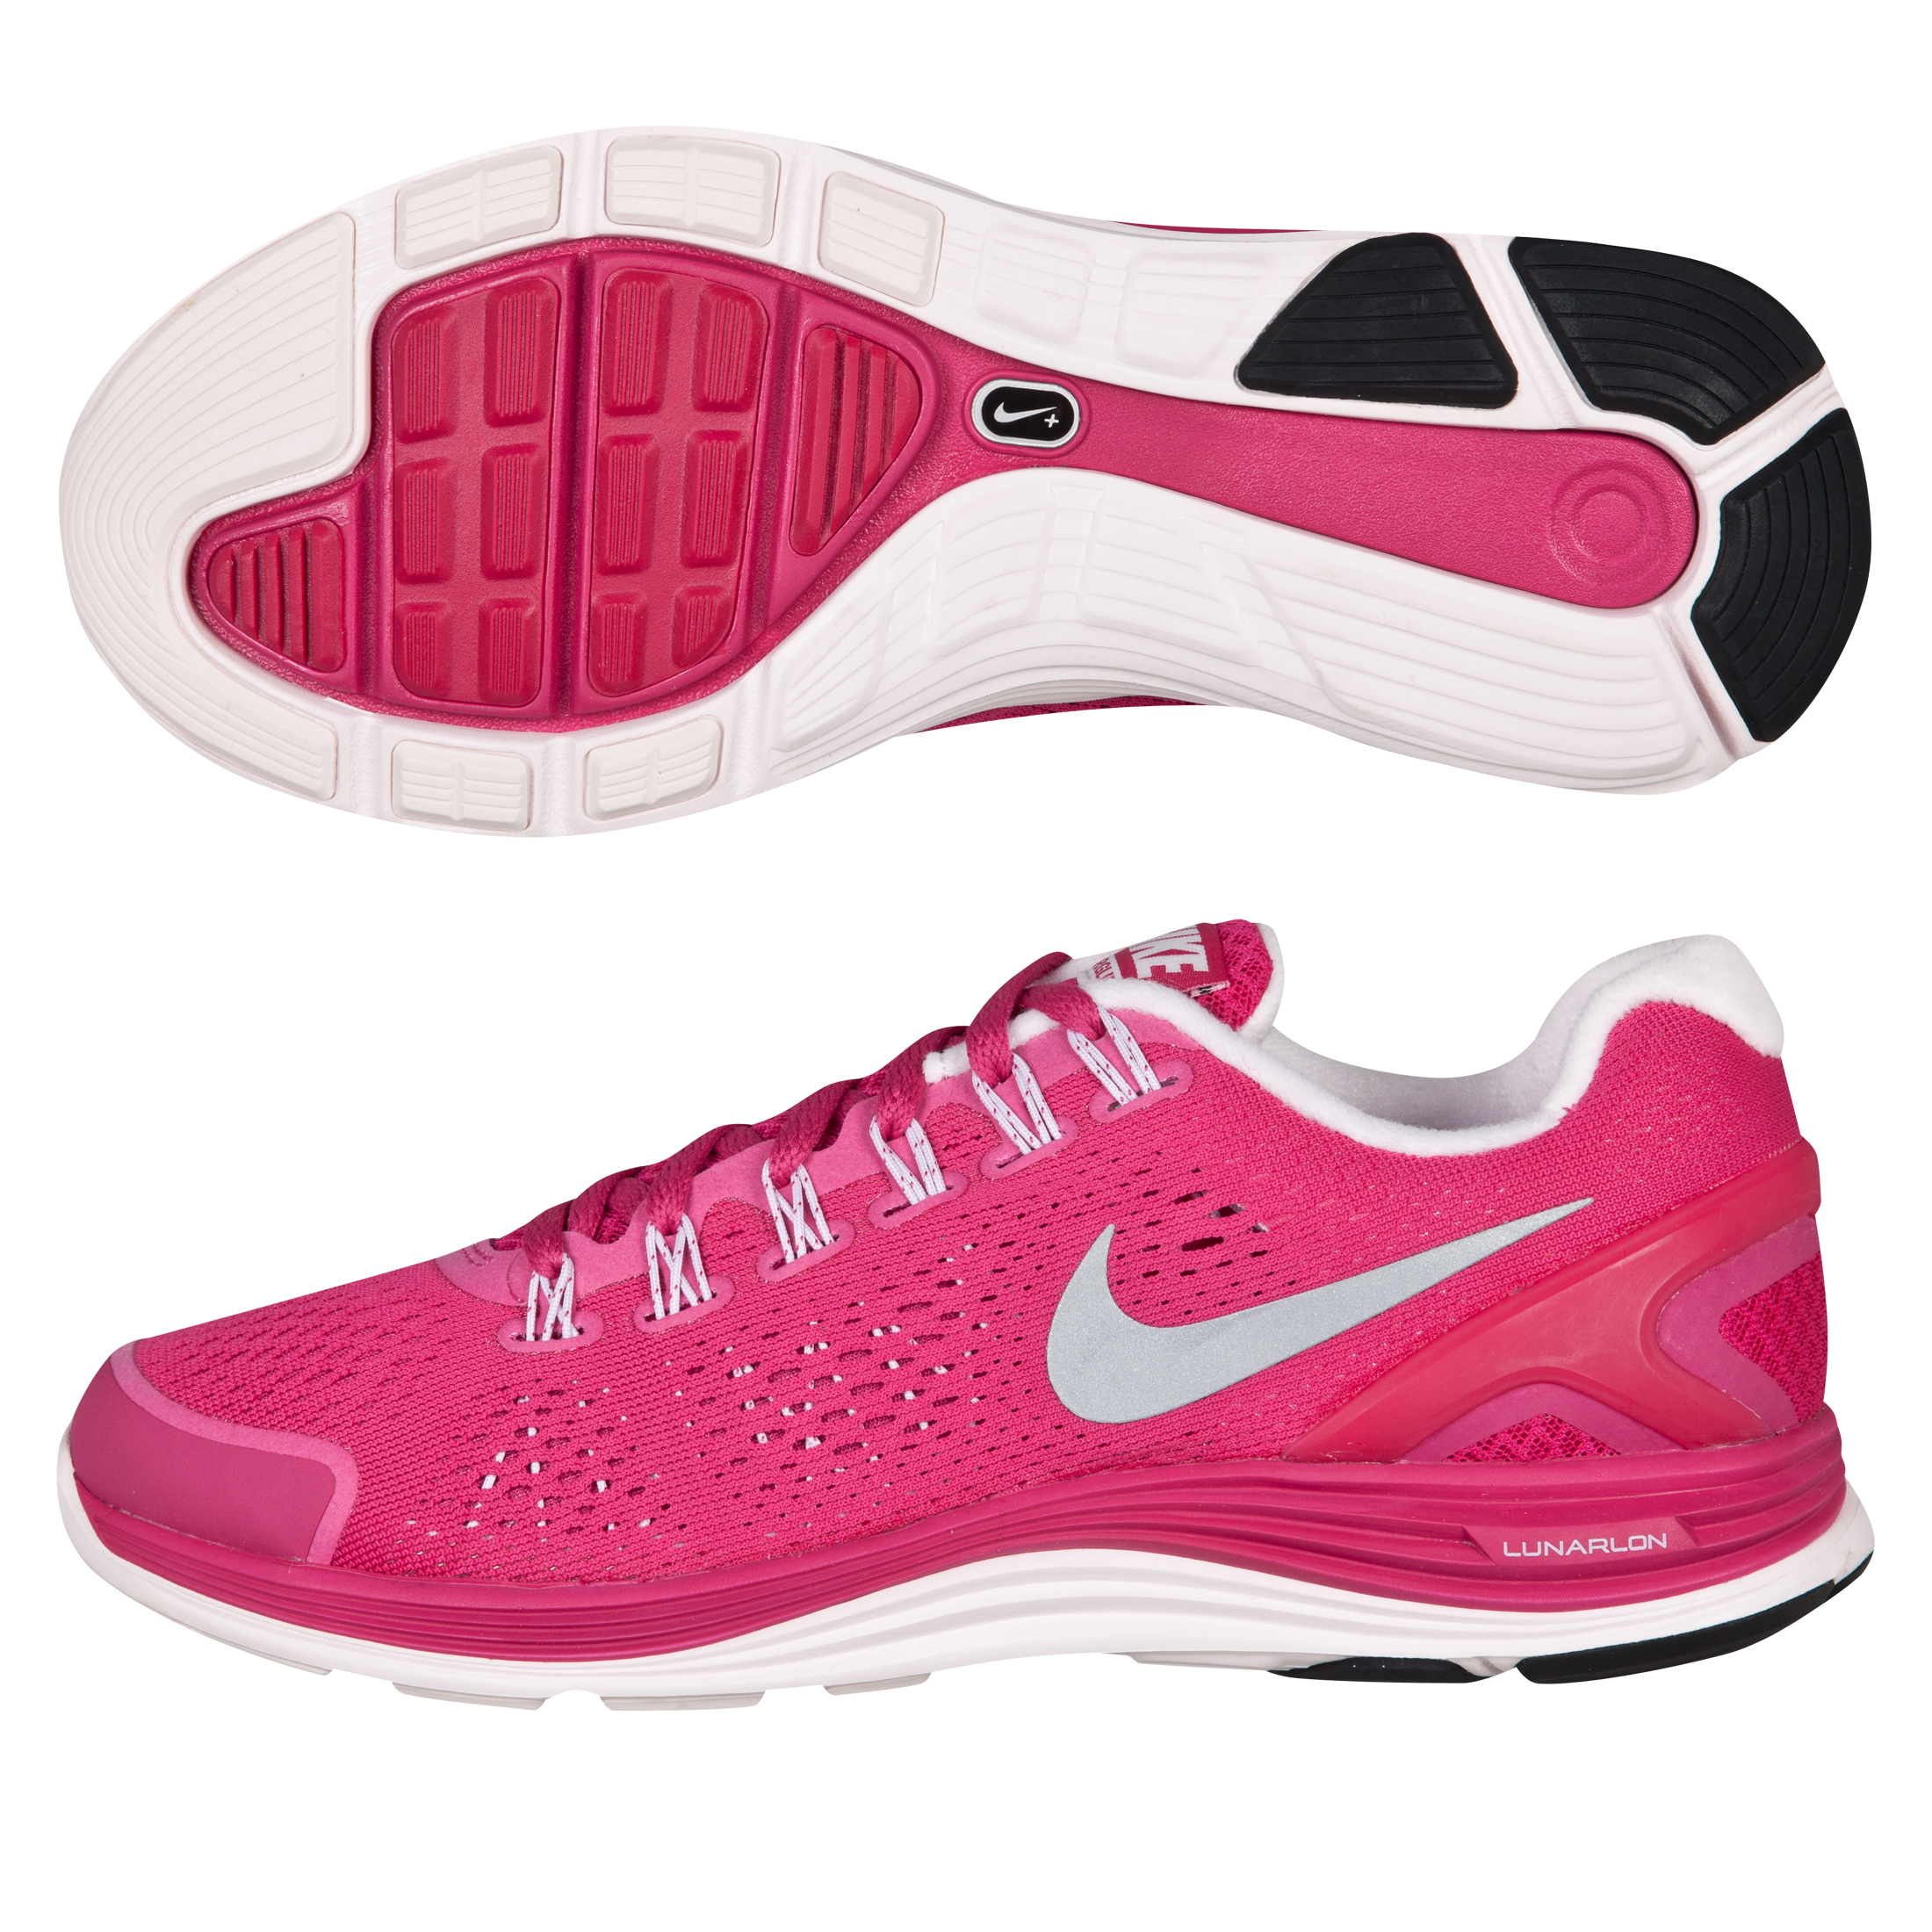 Nike Lunarglide+ 4 Trainers - Fireberry/Silver/Pink - Womens